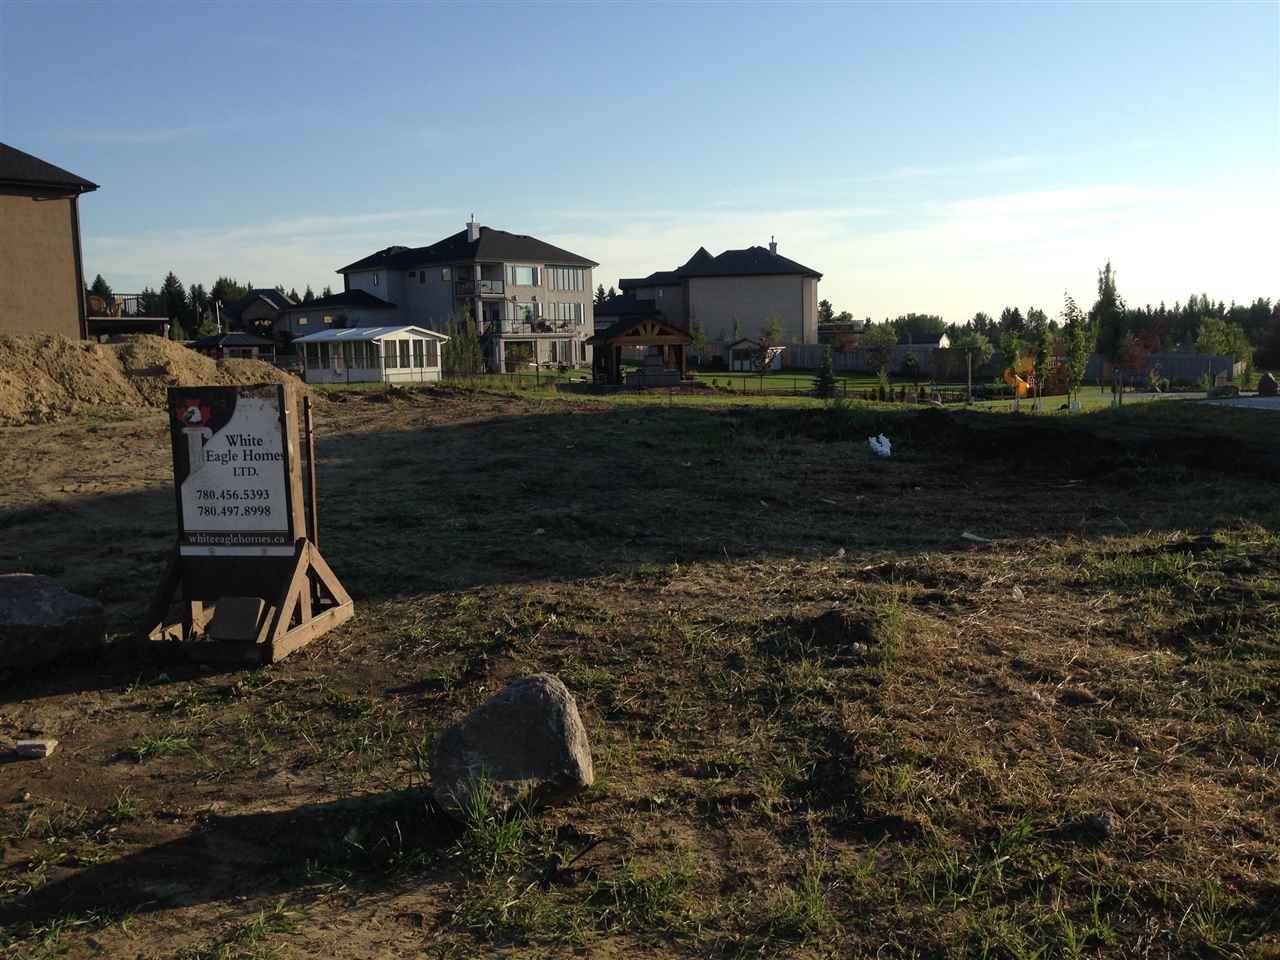 Located in Tuscany Hills Sturgeon County, this community combines estate living, country charm along with the sophistication and convince of city life. The lot is nearly half acre walkout lot and nearby pond/park walking area. The lot offers tons of space for multiple car garage and still plenty of room left for fun entertainment in the backyard. The location is close o Edmonton, but far from high volume traffic and loud city noise. Enjoy a hybrid of county and city living in Tuscany Hills. This lot is ready to be the location of your new home. Architectural Control and Landscaping deposit required.